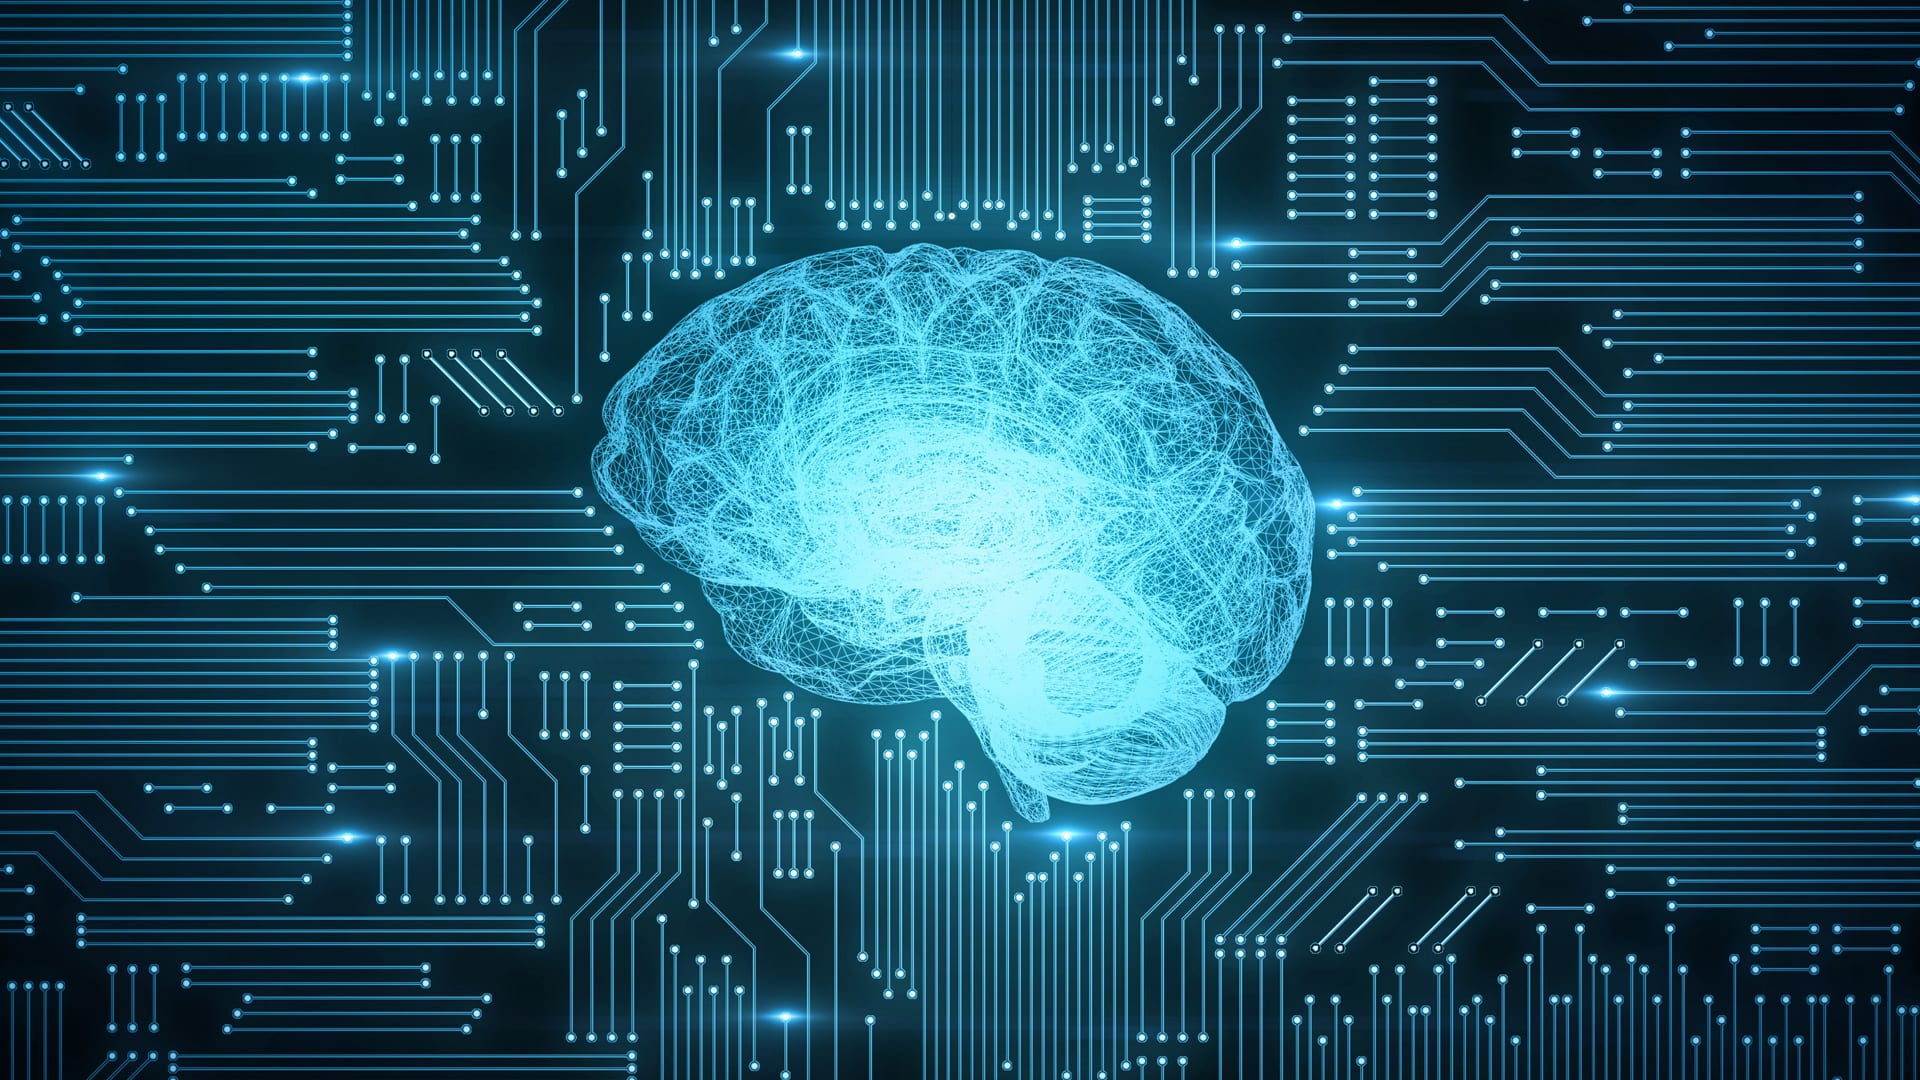 Learn More: Artificial Intelligence